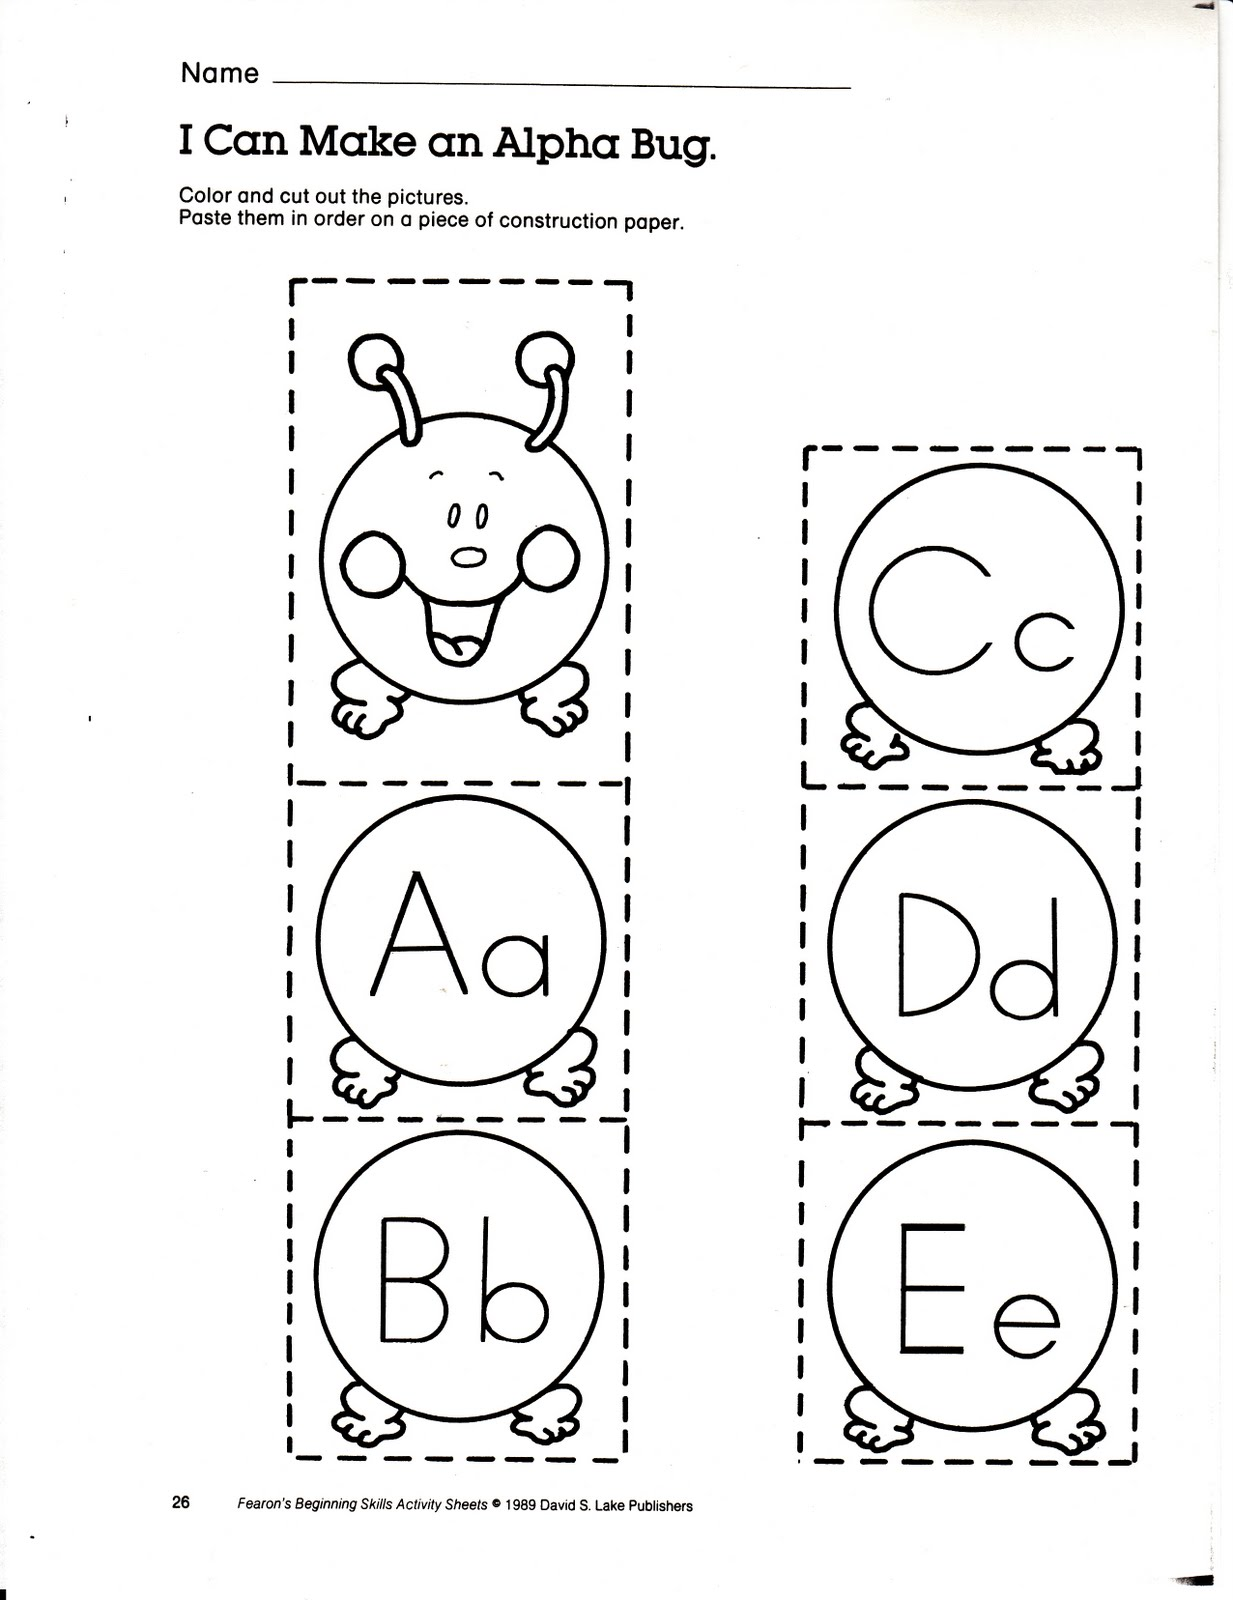 Teacheru0026#39;s Market: Alphabet activities u0026 book list for your classroom or home use